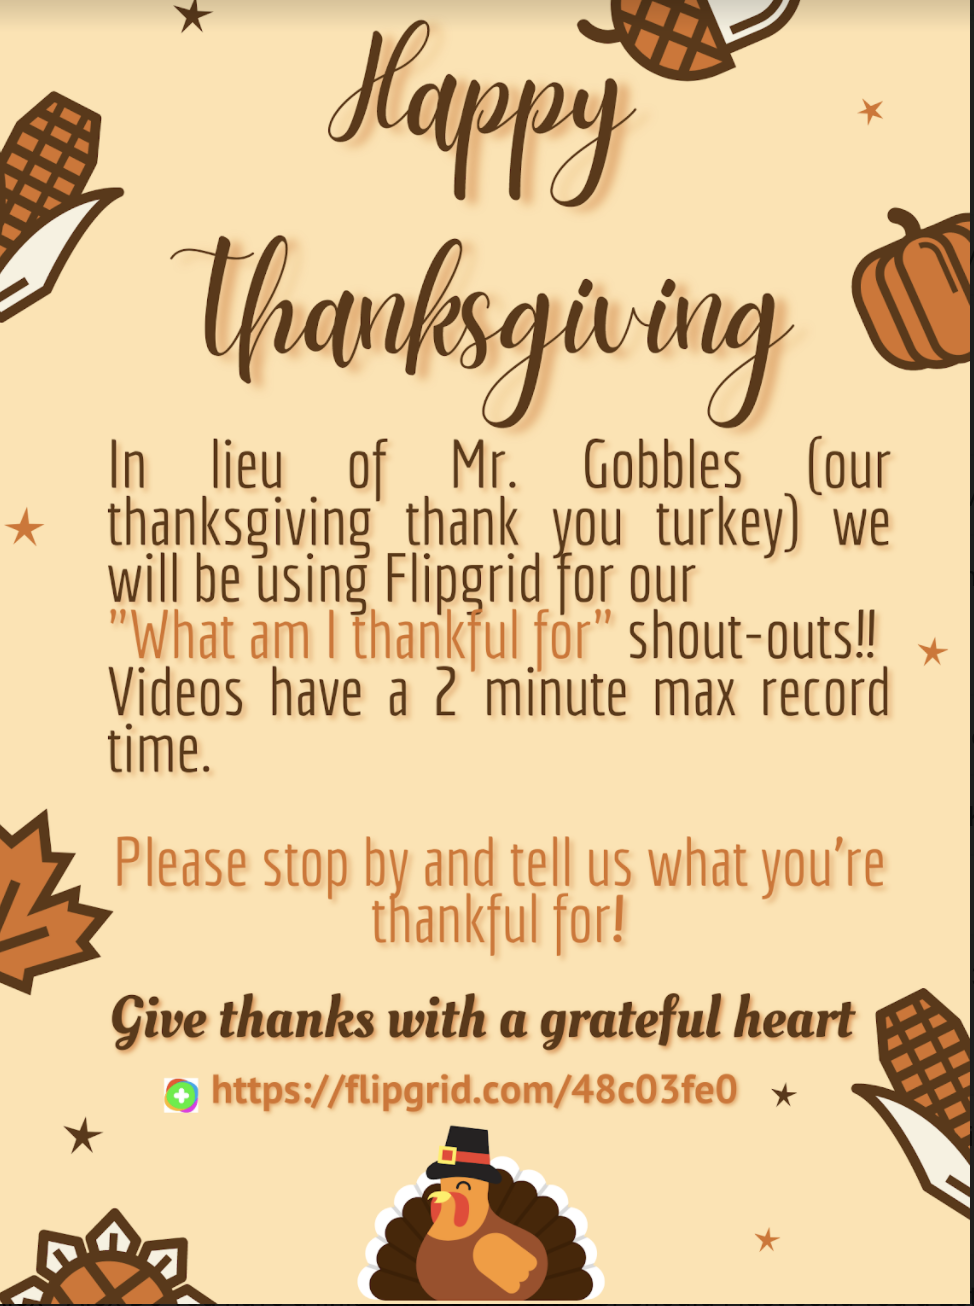 Tell us what you are Thankful for!